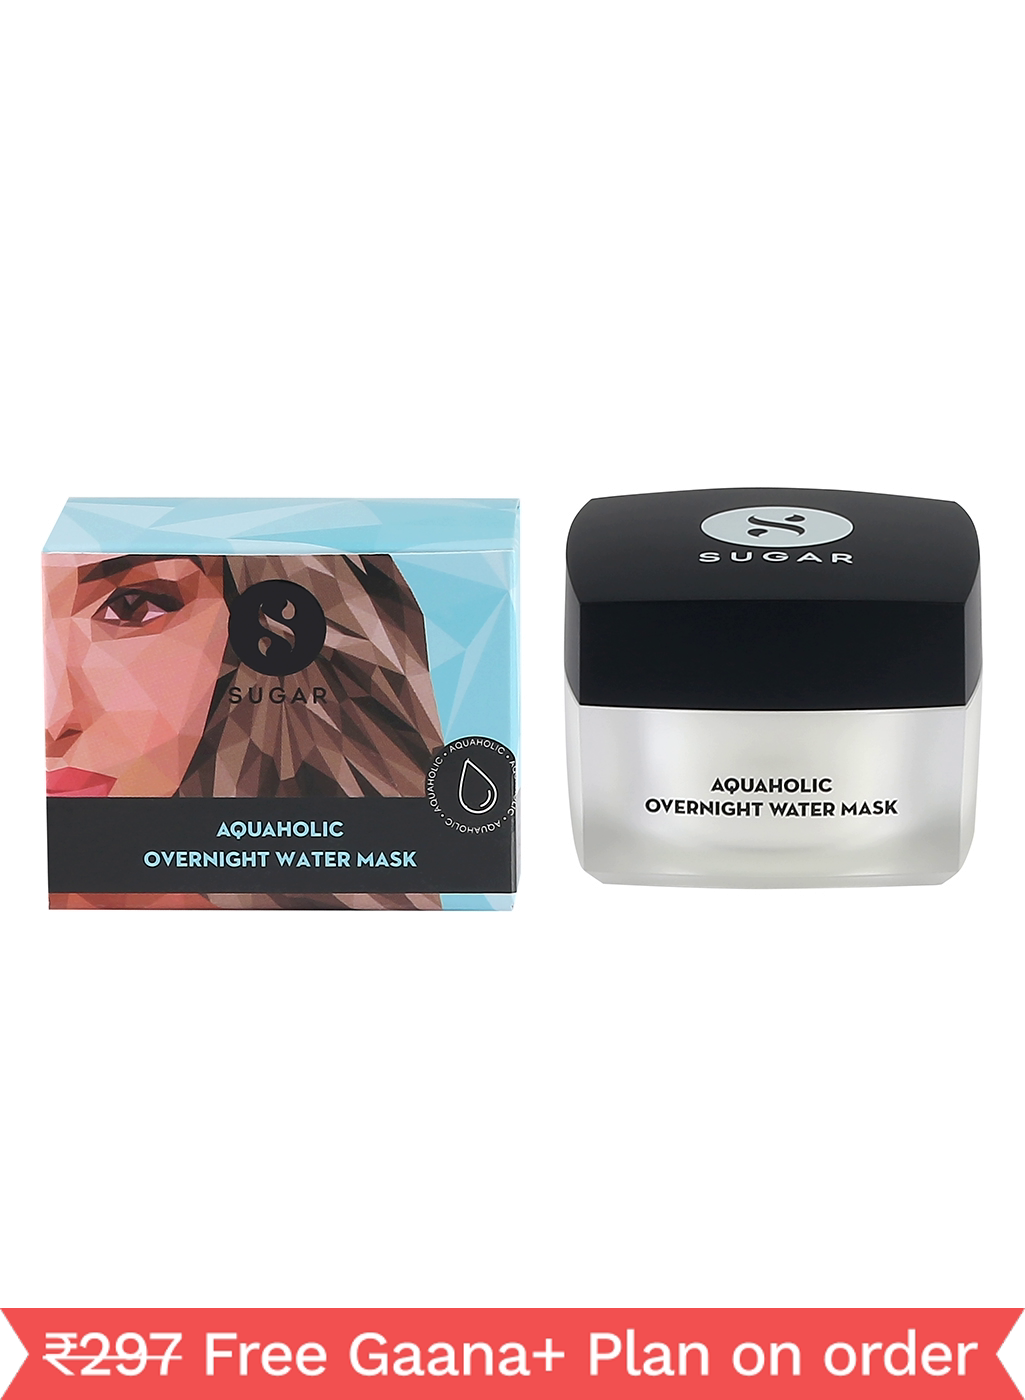 SUGAR Aquaholic Overnight Water Mask